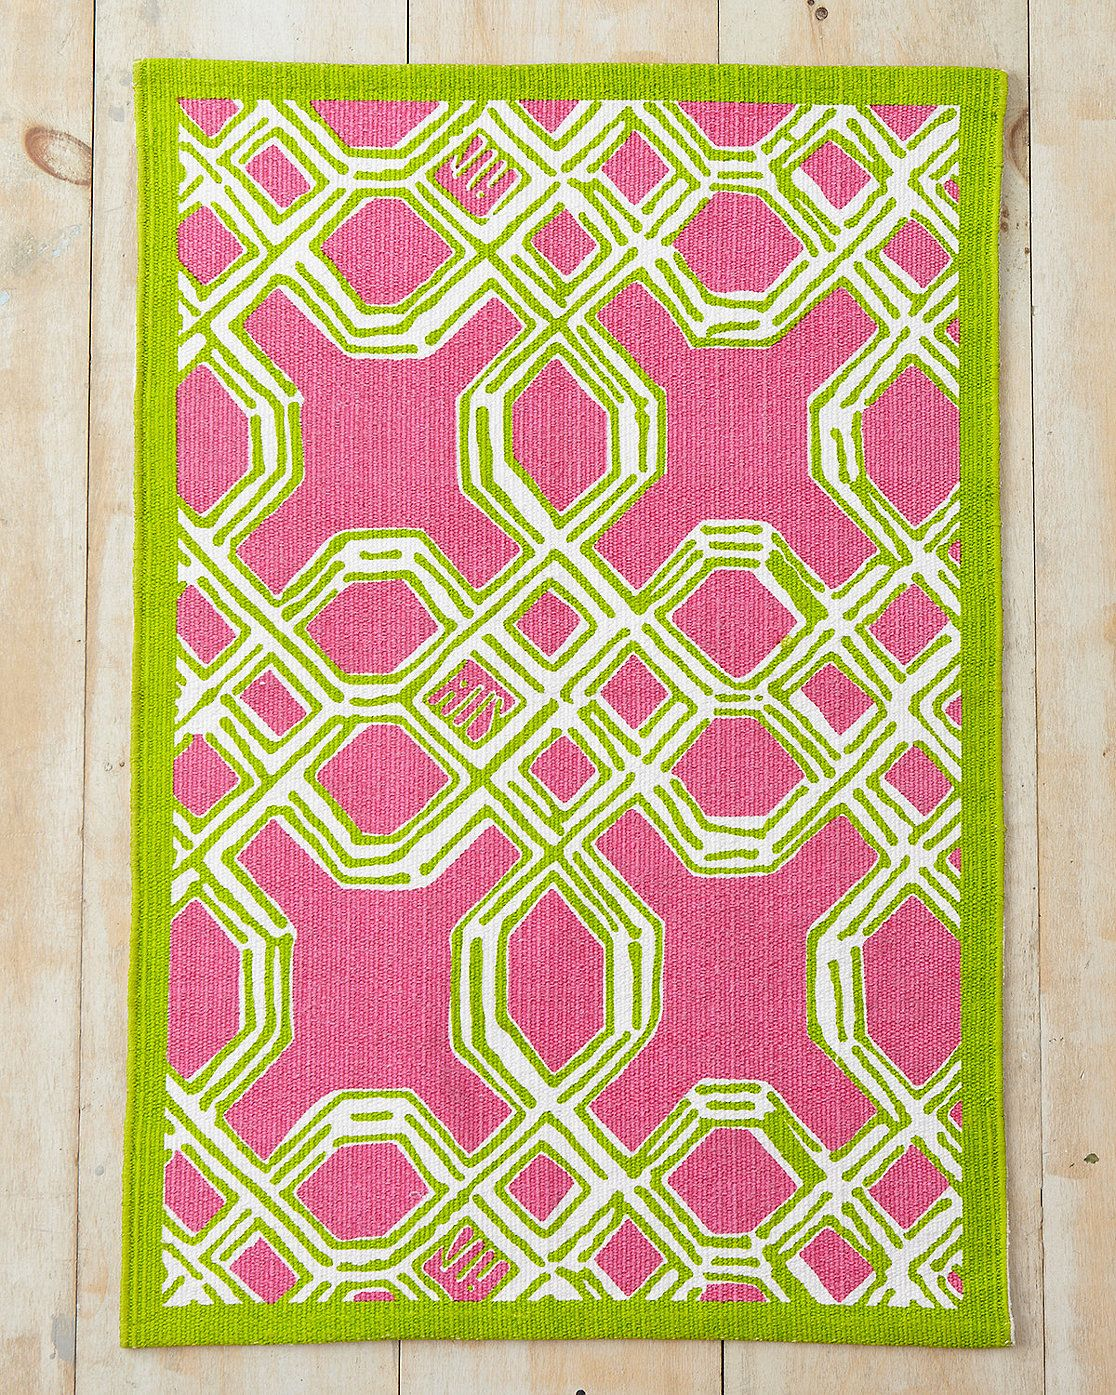 Lilly Pulitzer Well Connected Cotton Rug Garnet Hill